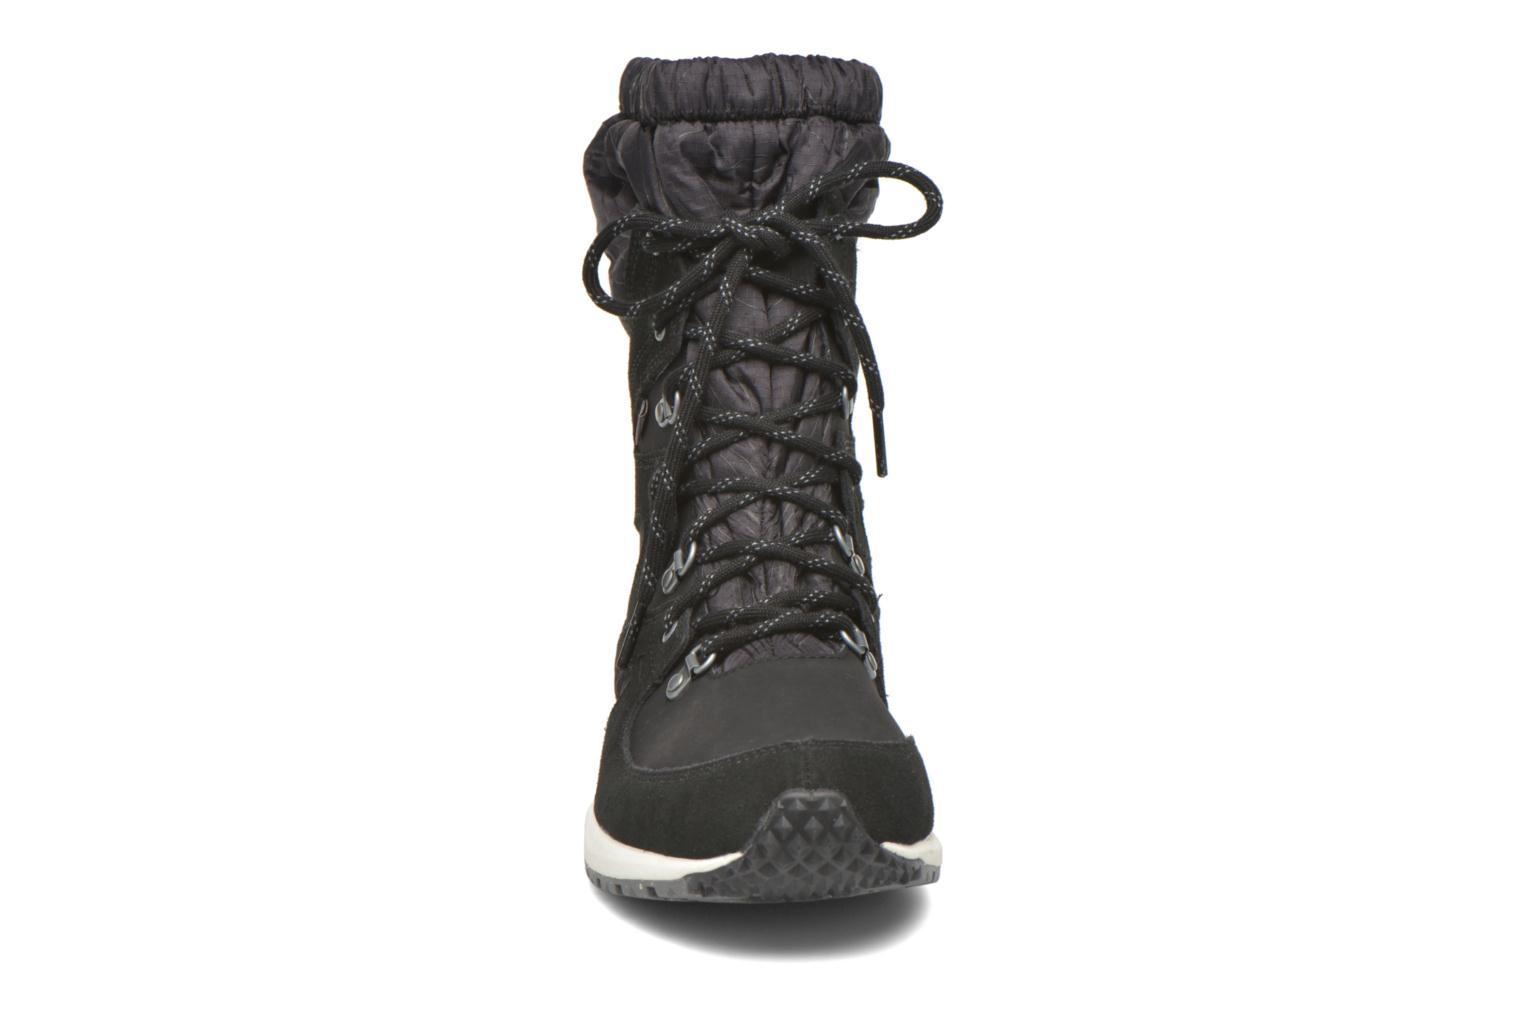 Stowe Winter Tall Waterproof Black